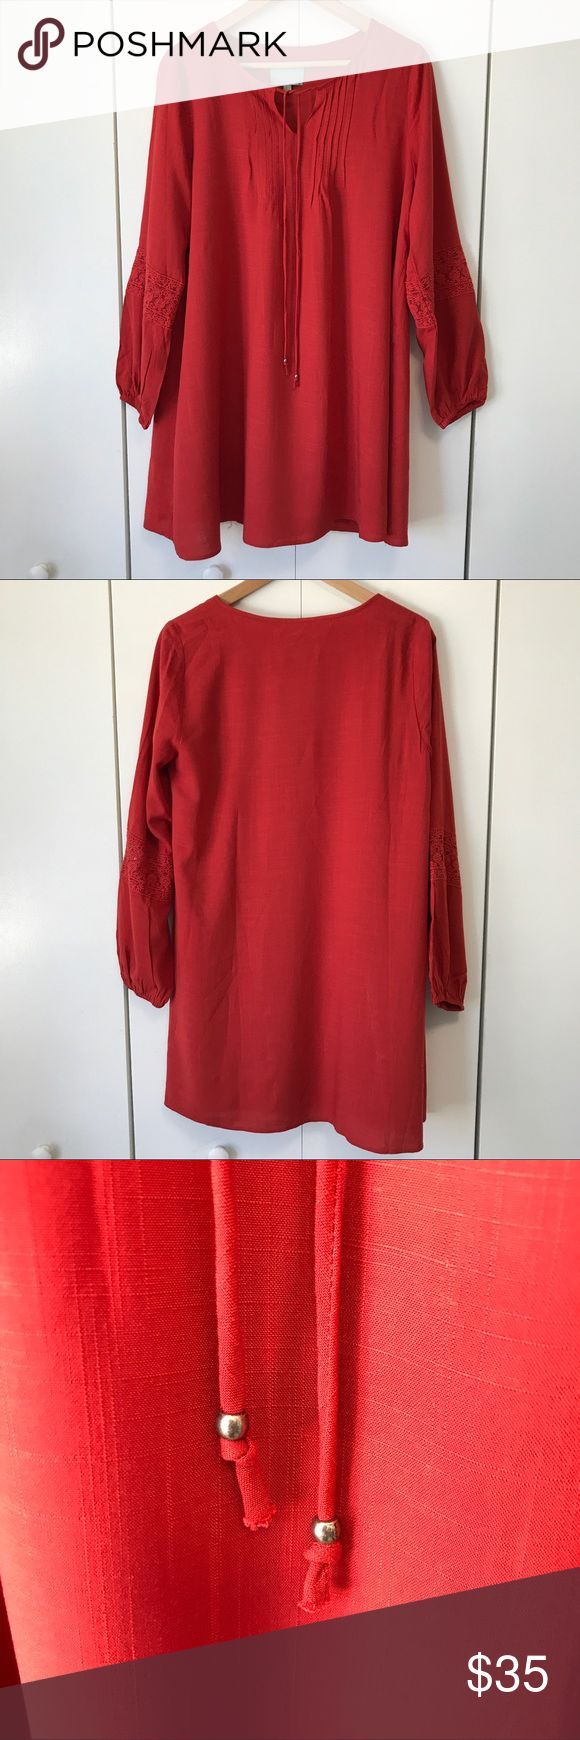 """Stitch Fix Skies Are Blue Red Lace Tunic Dress XS Red tunic dress from Stitch Fix's Skies Are Blue in women's size extra small. Decorative lace detailing on sleeves. Pin tucked front with tie closure at collar. Loose and relaxed fit. Could also be worn as a beach or swim coverup. One small snag in fabric on one sleeve (see picture). 20"""" from armpit to armpit. 23.5"""" from bottom of armpit to bottom of hem. 23.5"""" sleeve length. Skies Are Blue Dresses Mini"""